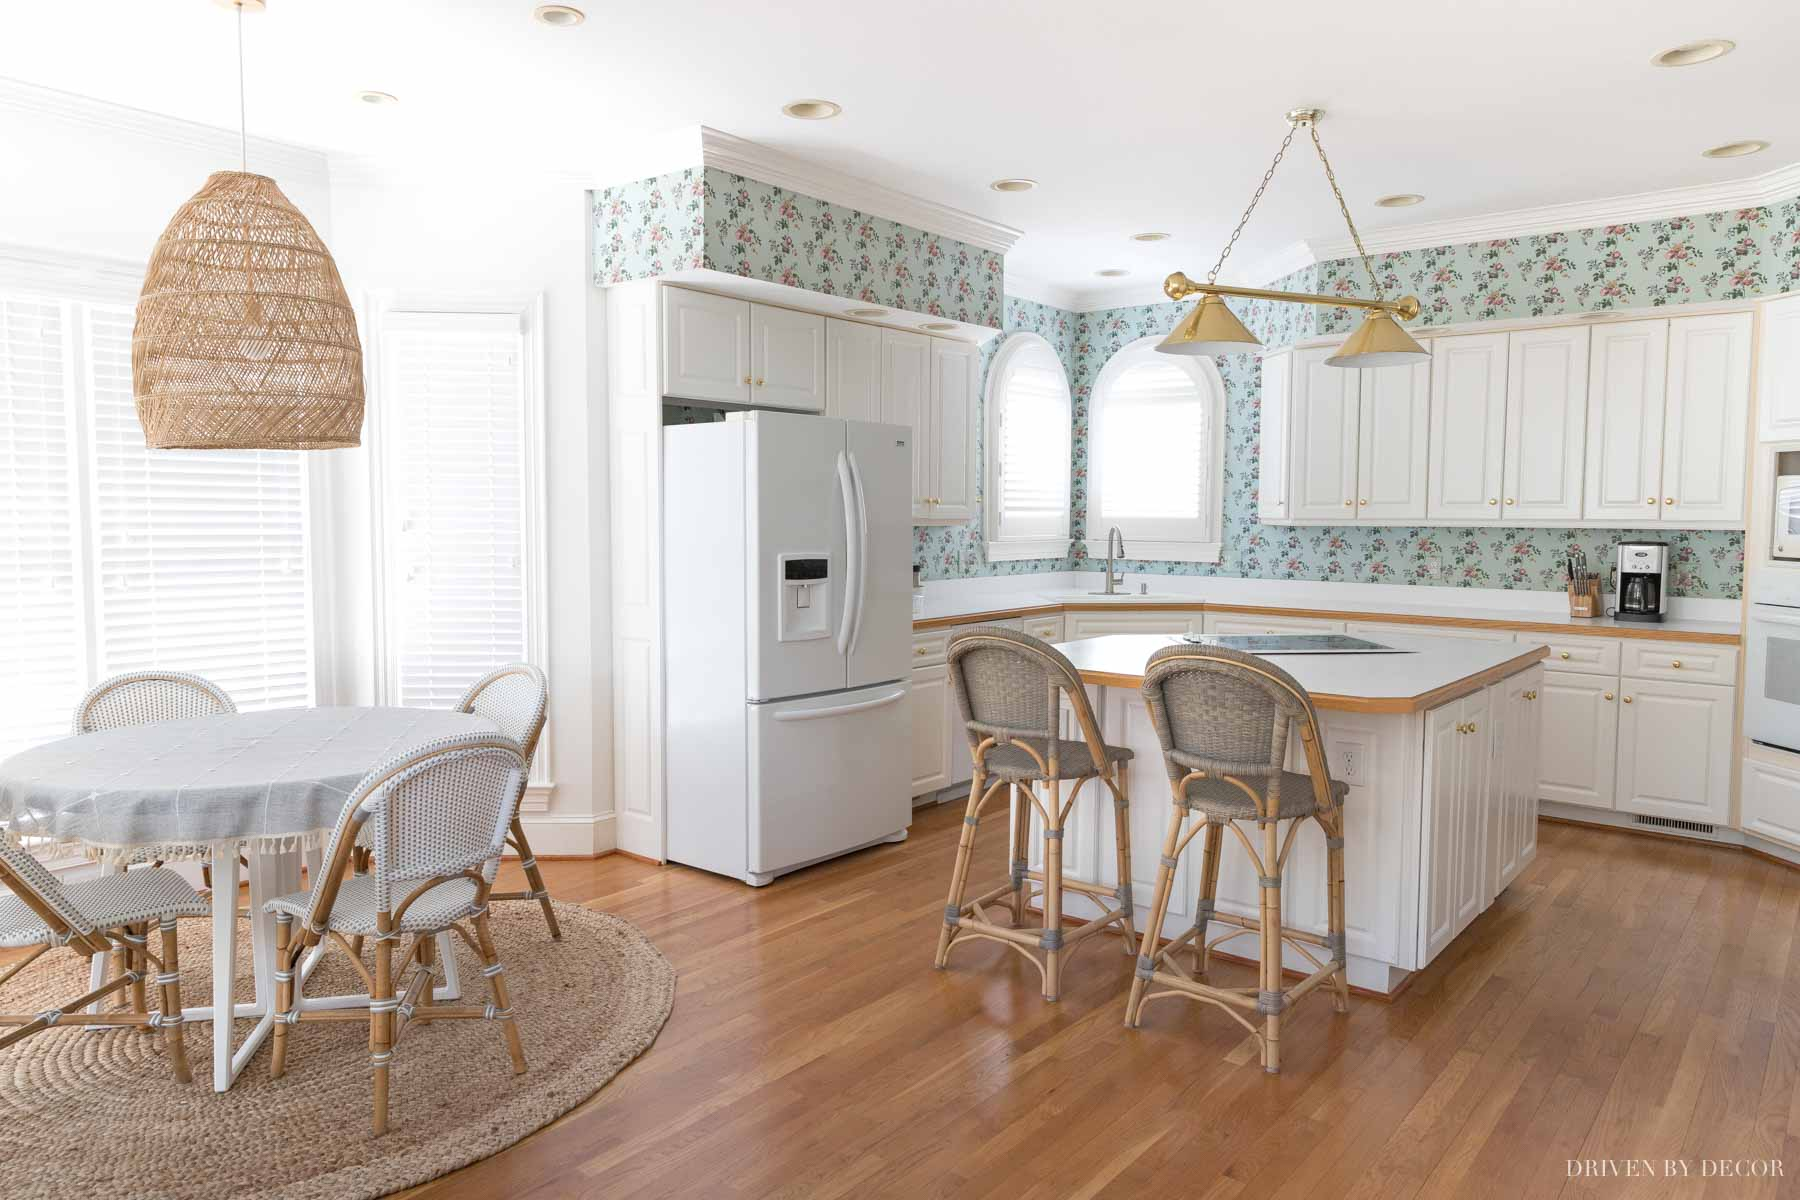 Love the breakfast nook in this kitchen she's updating!